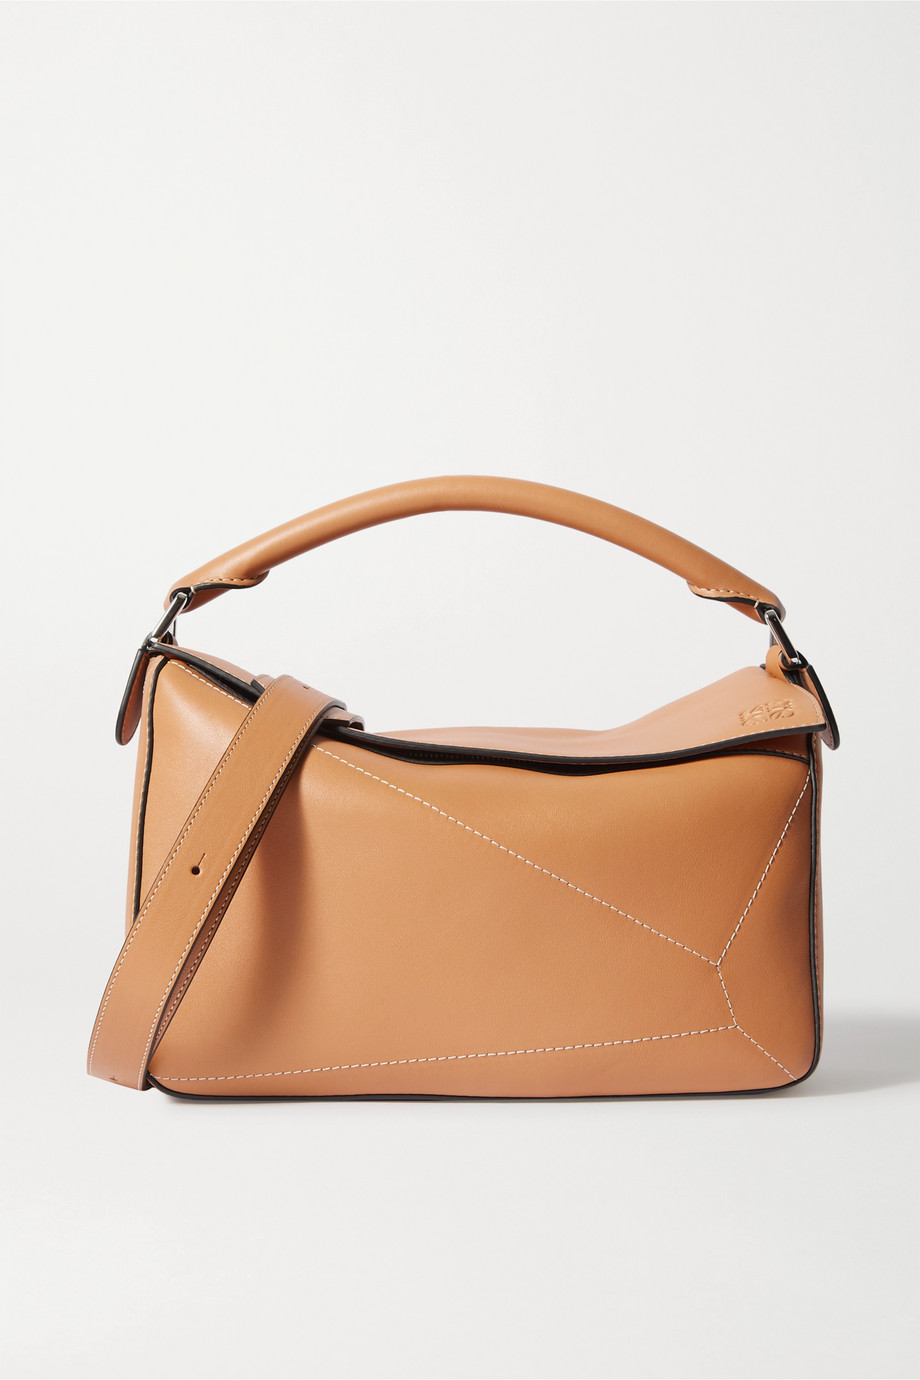 Loewe Puzzle large leather shoulder bag